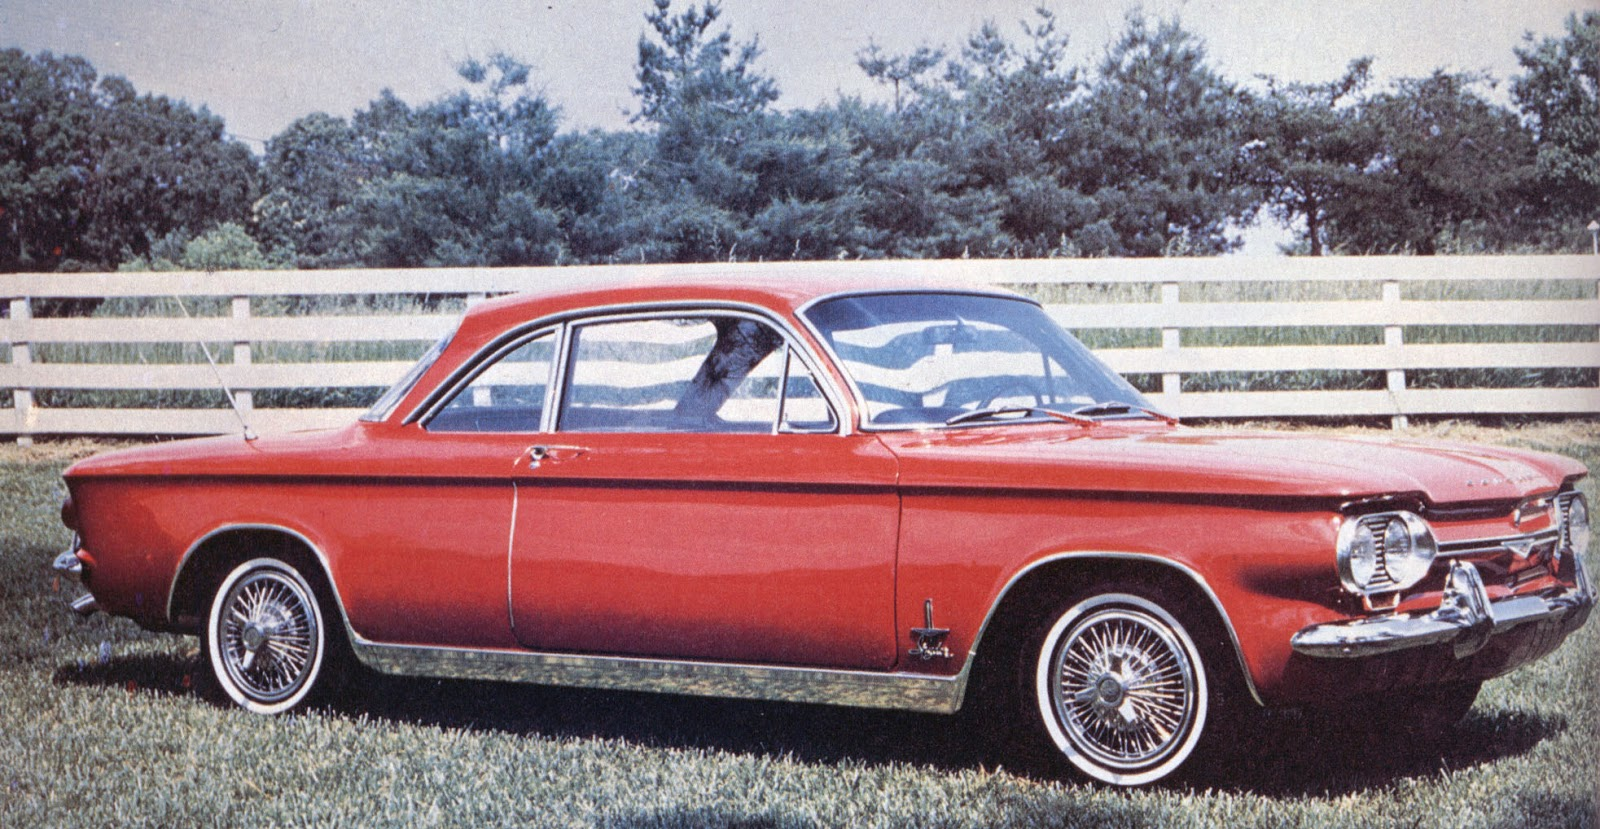 Corvair And Falcon Man Phscollectorcarworld 1960 Studebaker Lark Wiring Diagram The 1964 Monza Spyder Hardtop Was Mans Second Purchase After A 900